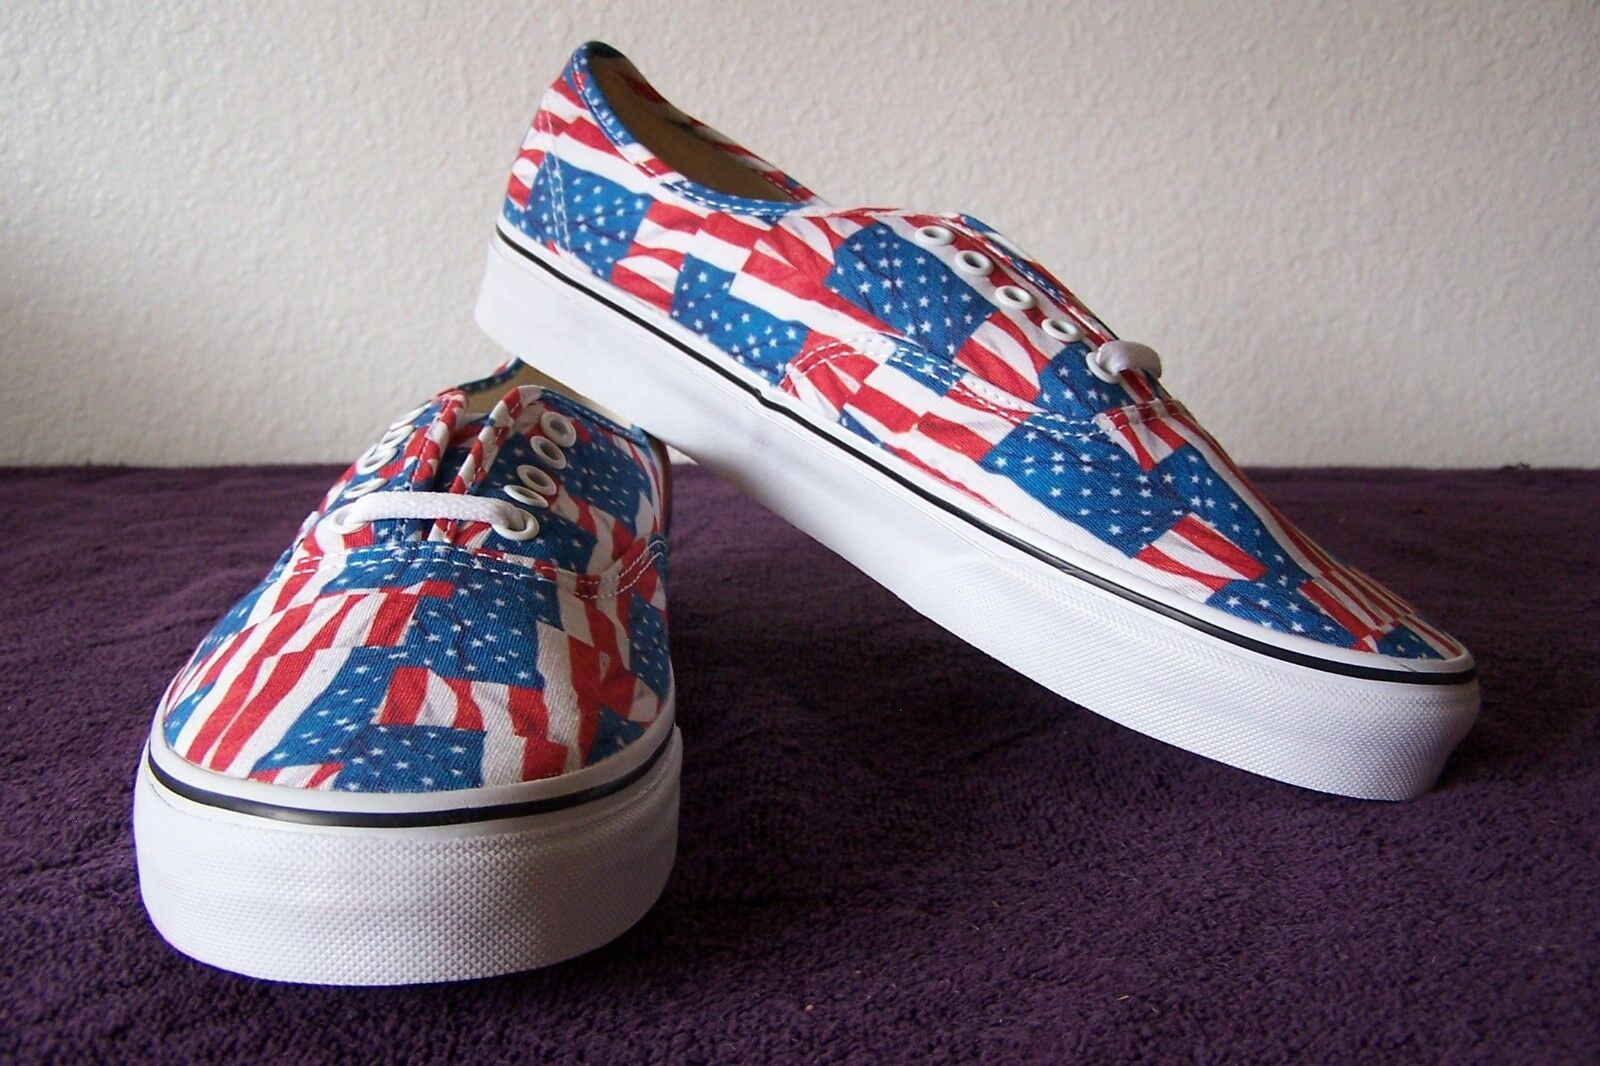 ce787374b644 VANS Authentic USA Flag Red White Blue SNEAKERS 10.5 Men US EUR 44 ...